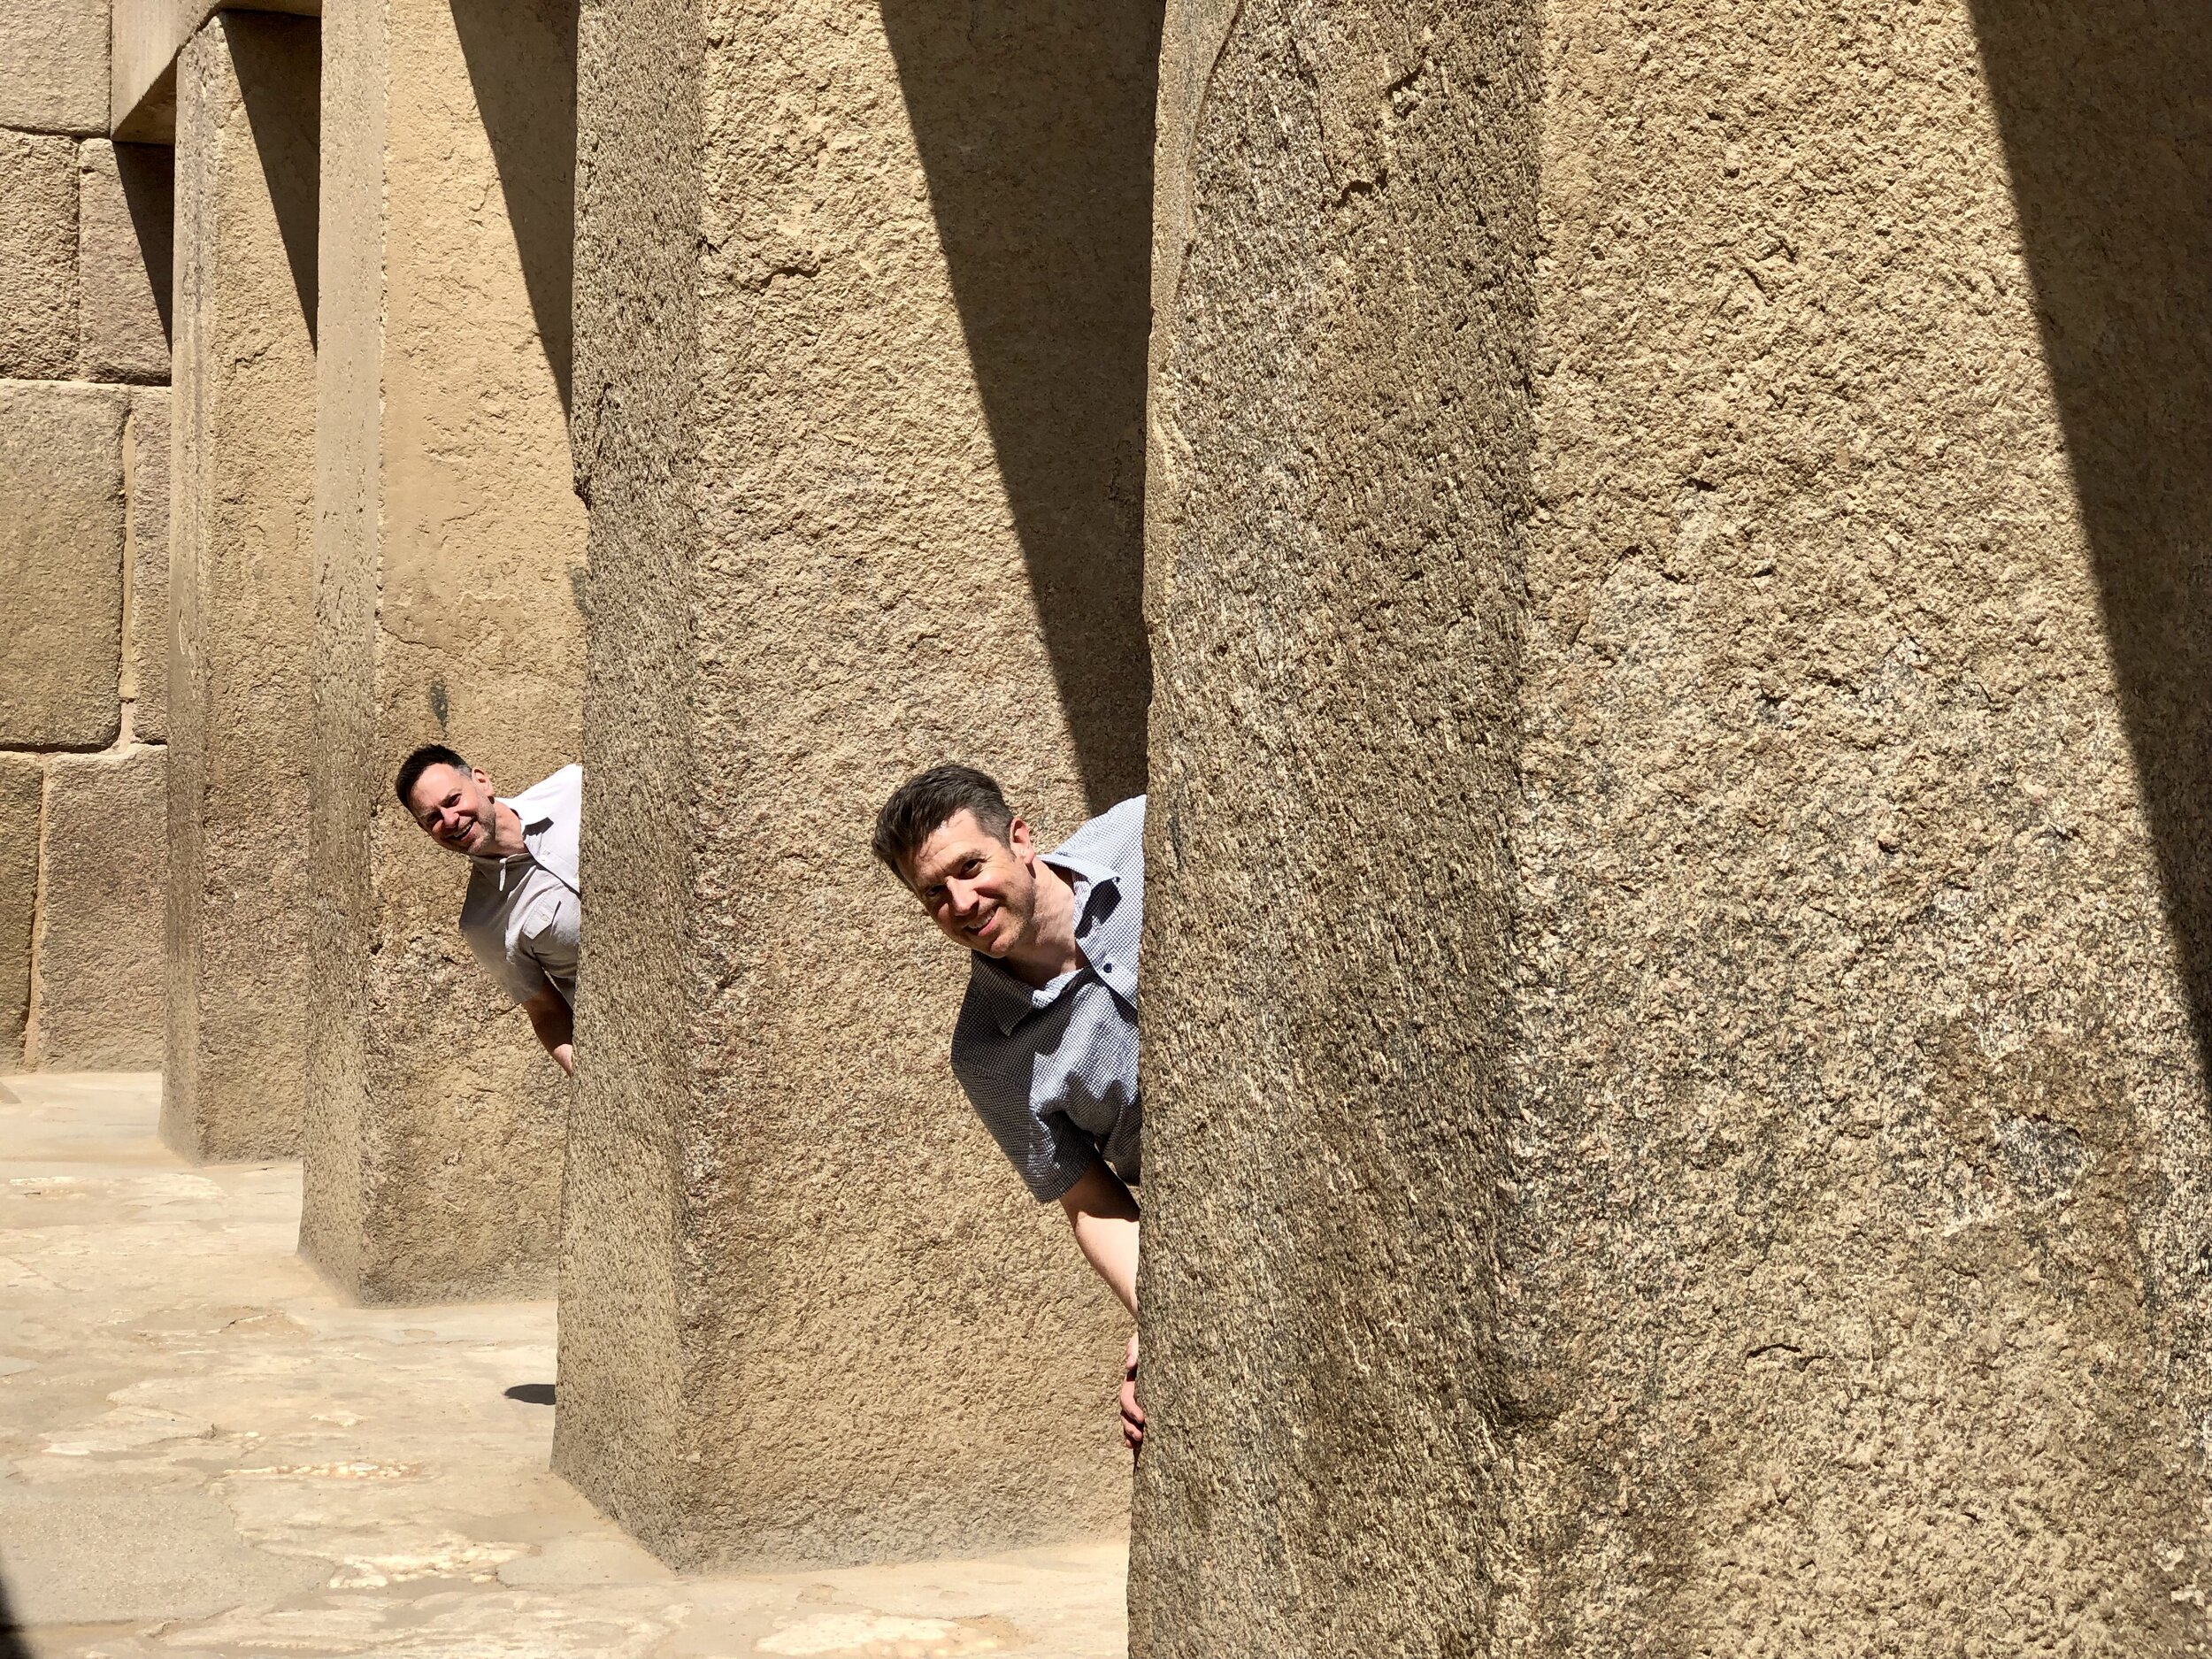 Duke and Wally peek out from the columns in the open-air Temple of Khafre